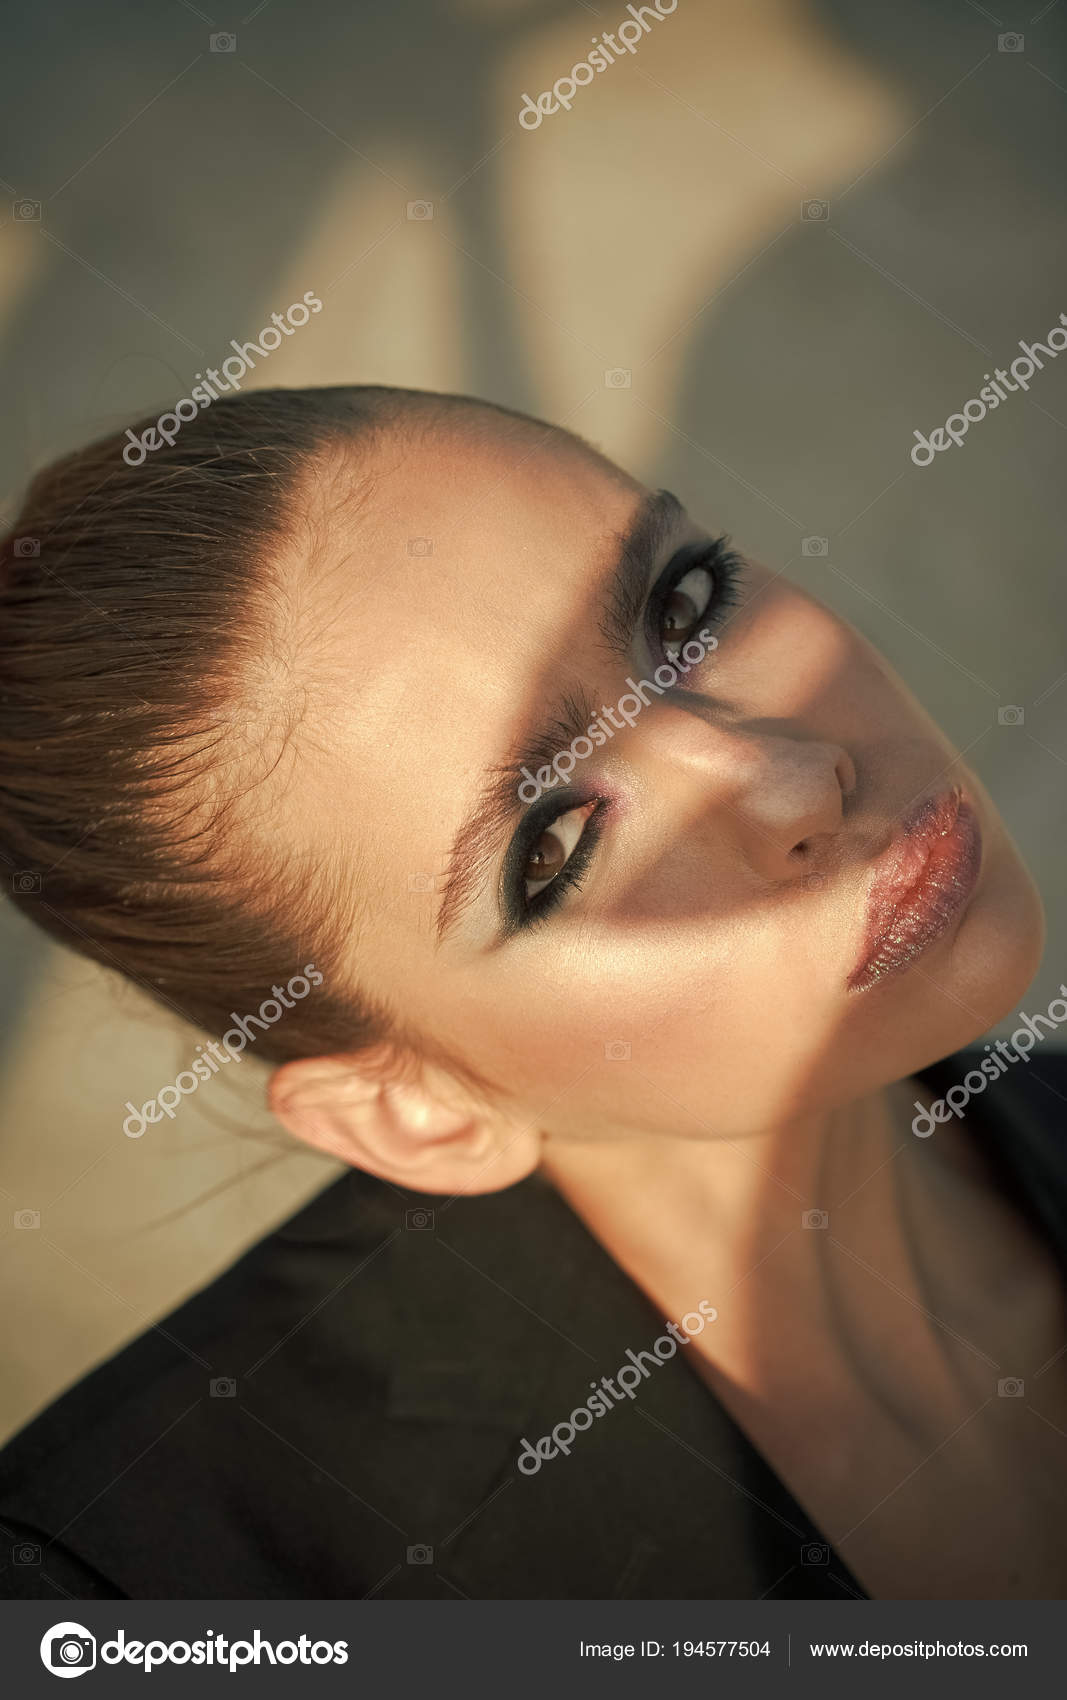 Cosmetics For Visage And Skincare Hairdresser Woman With Hairstyle